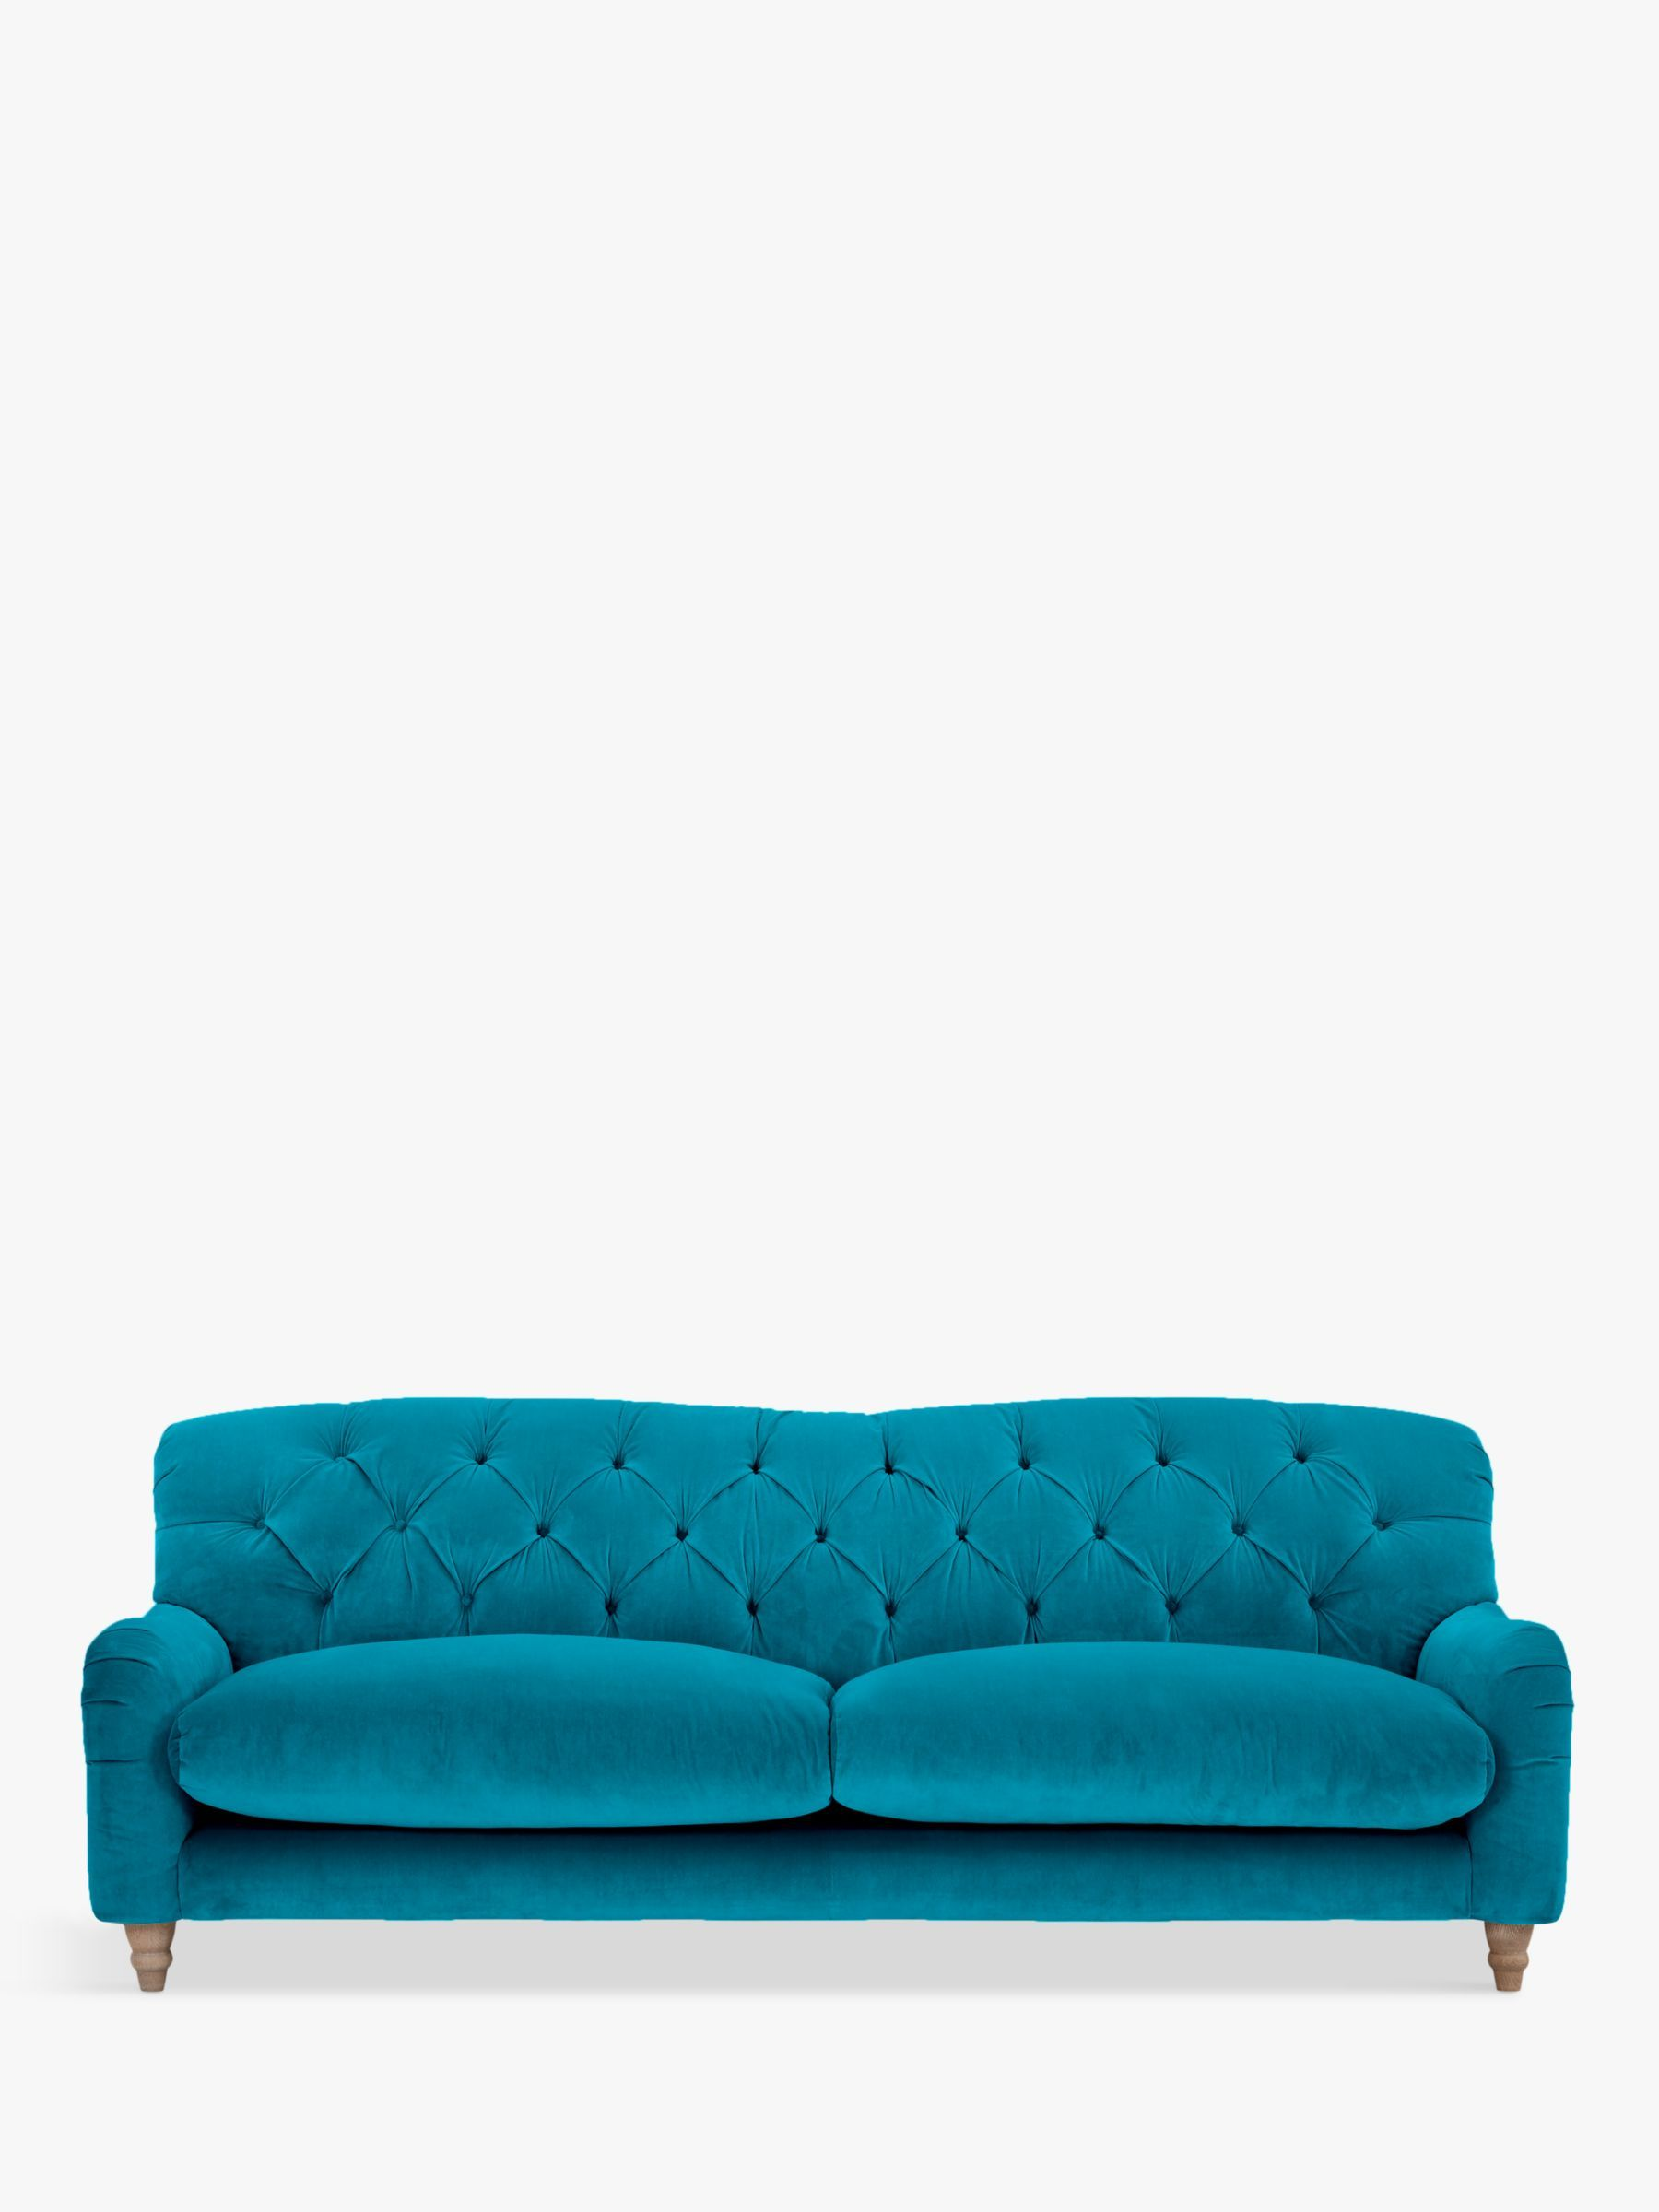 Crumble Grand 4 Seater Sofa By Loaf At John Lewis Brushed Cotton Peacock Sofa 3 Seater Sofa Beautiful Sofas